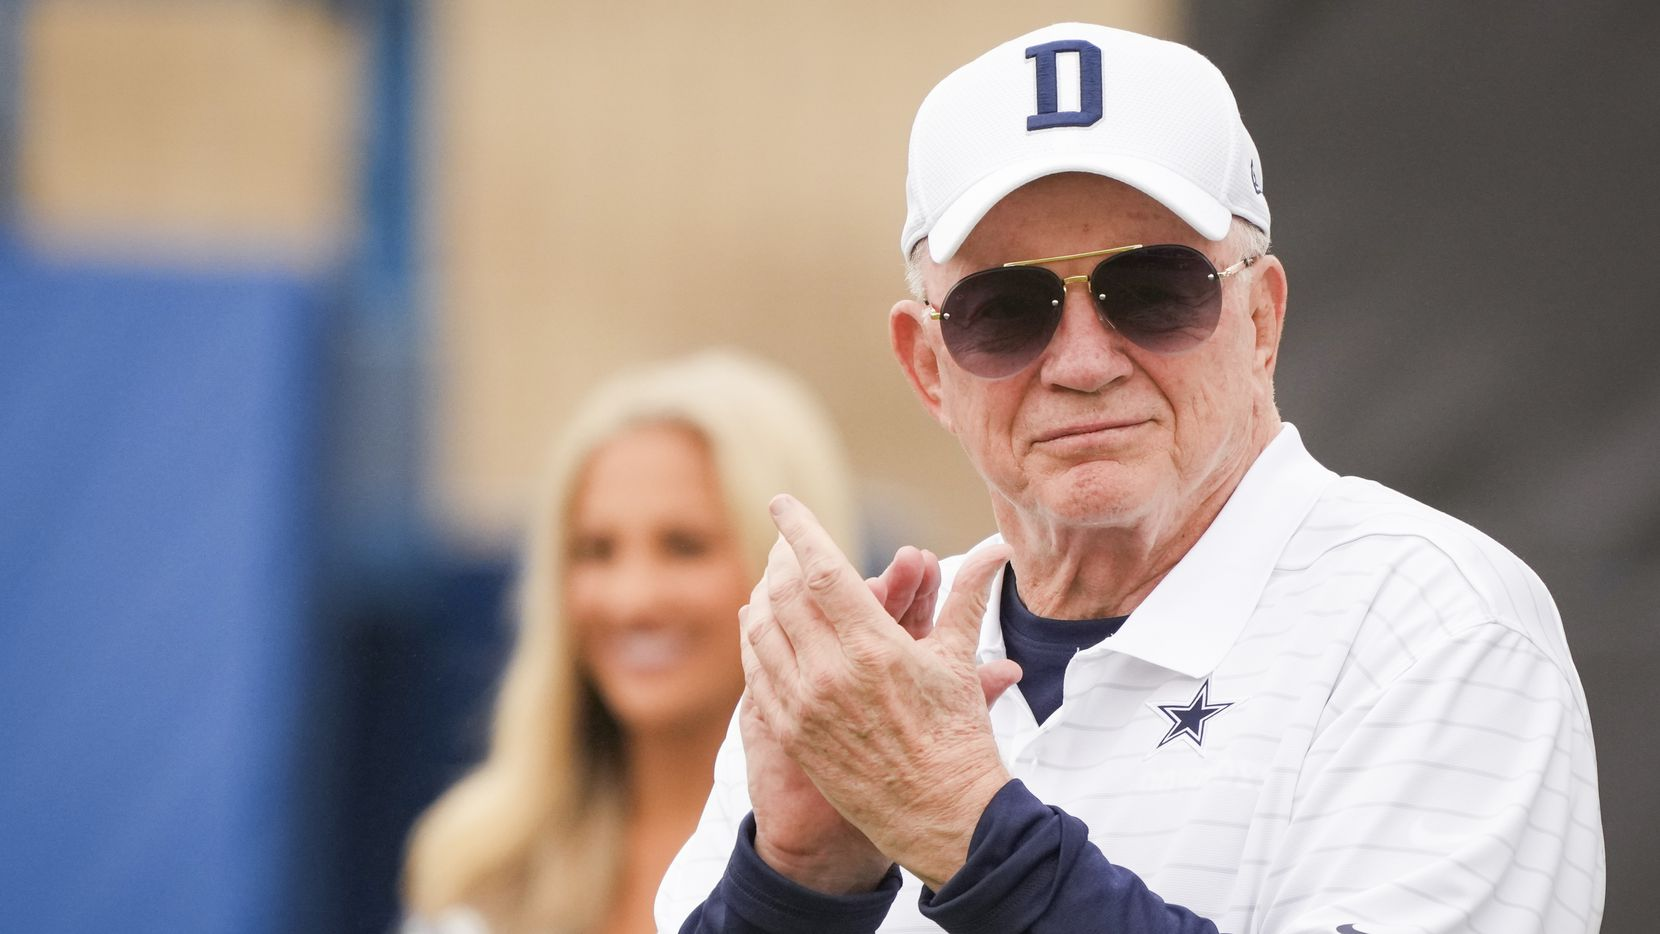 Owner and general manager Jerry Jones applauds a performance by the Dallas Cowboys cheerleaders during opening ceremonies before a practice at training camp on Saturday, July 24, 2021, in Oxnard, Calif.